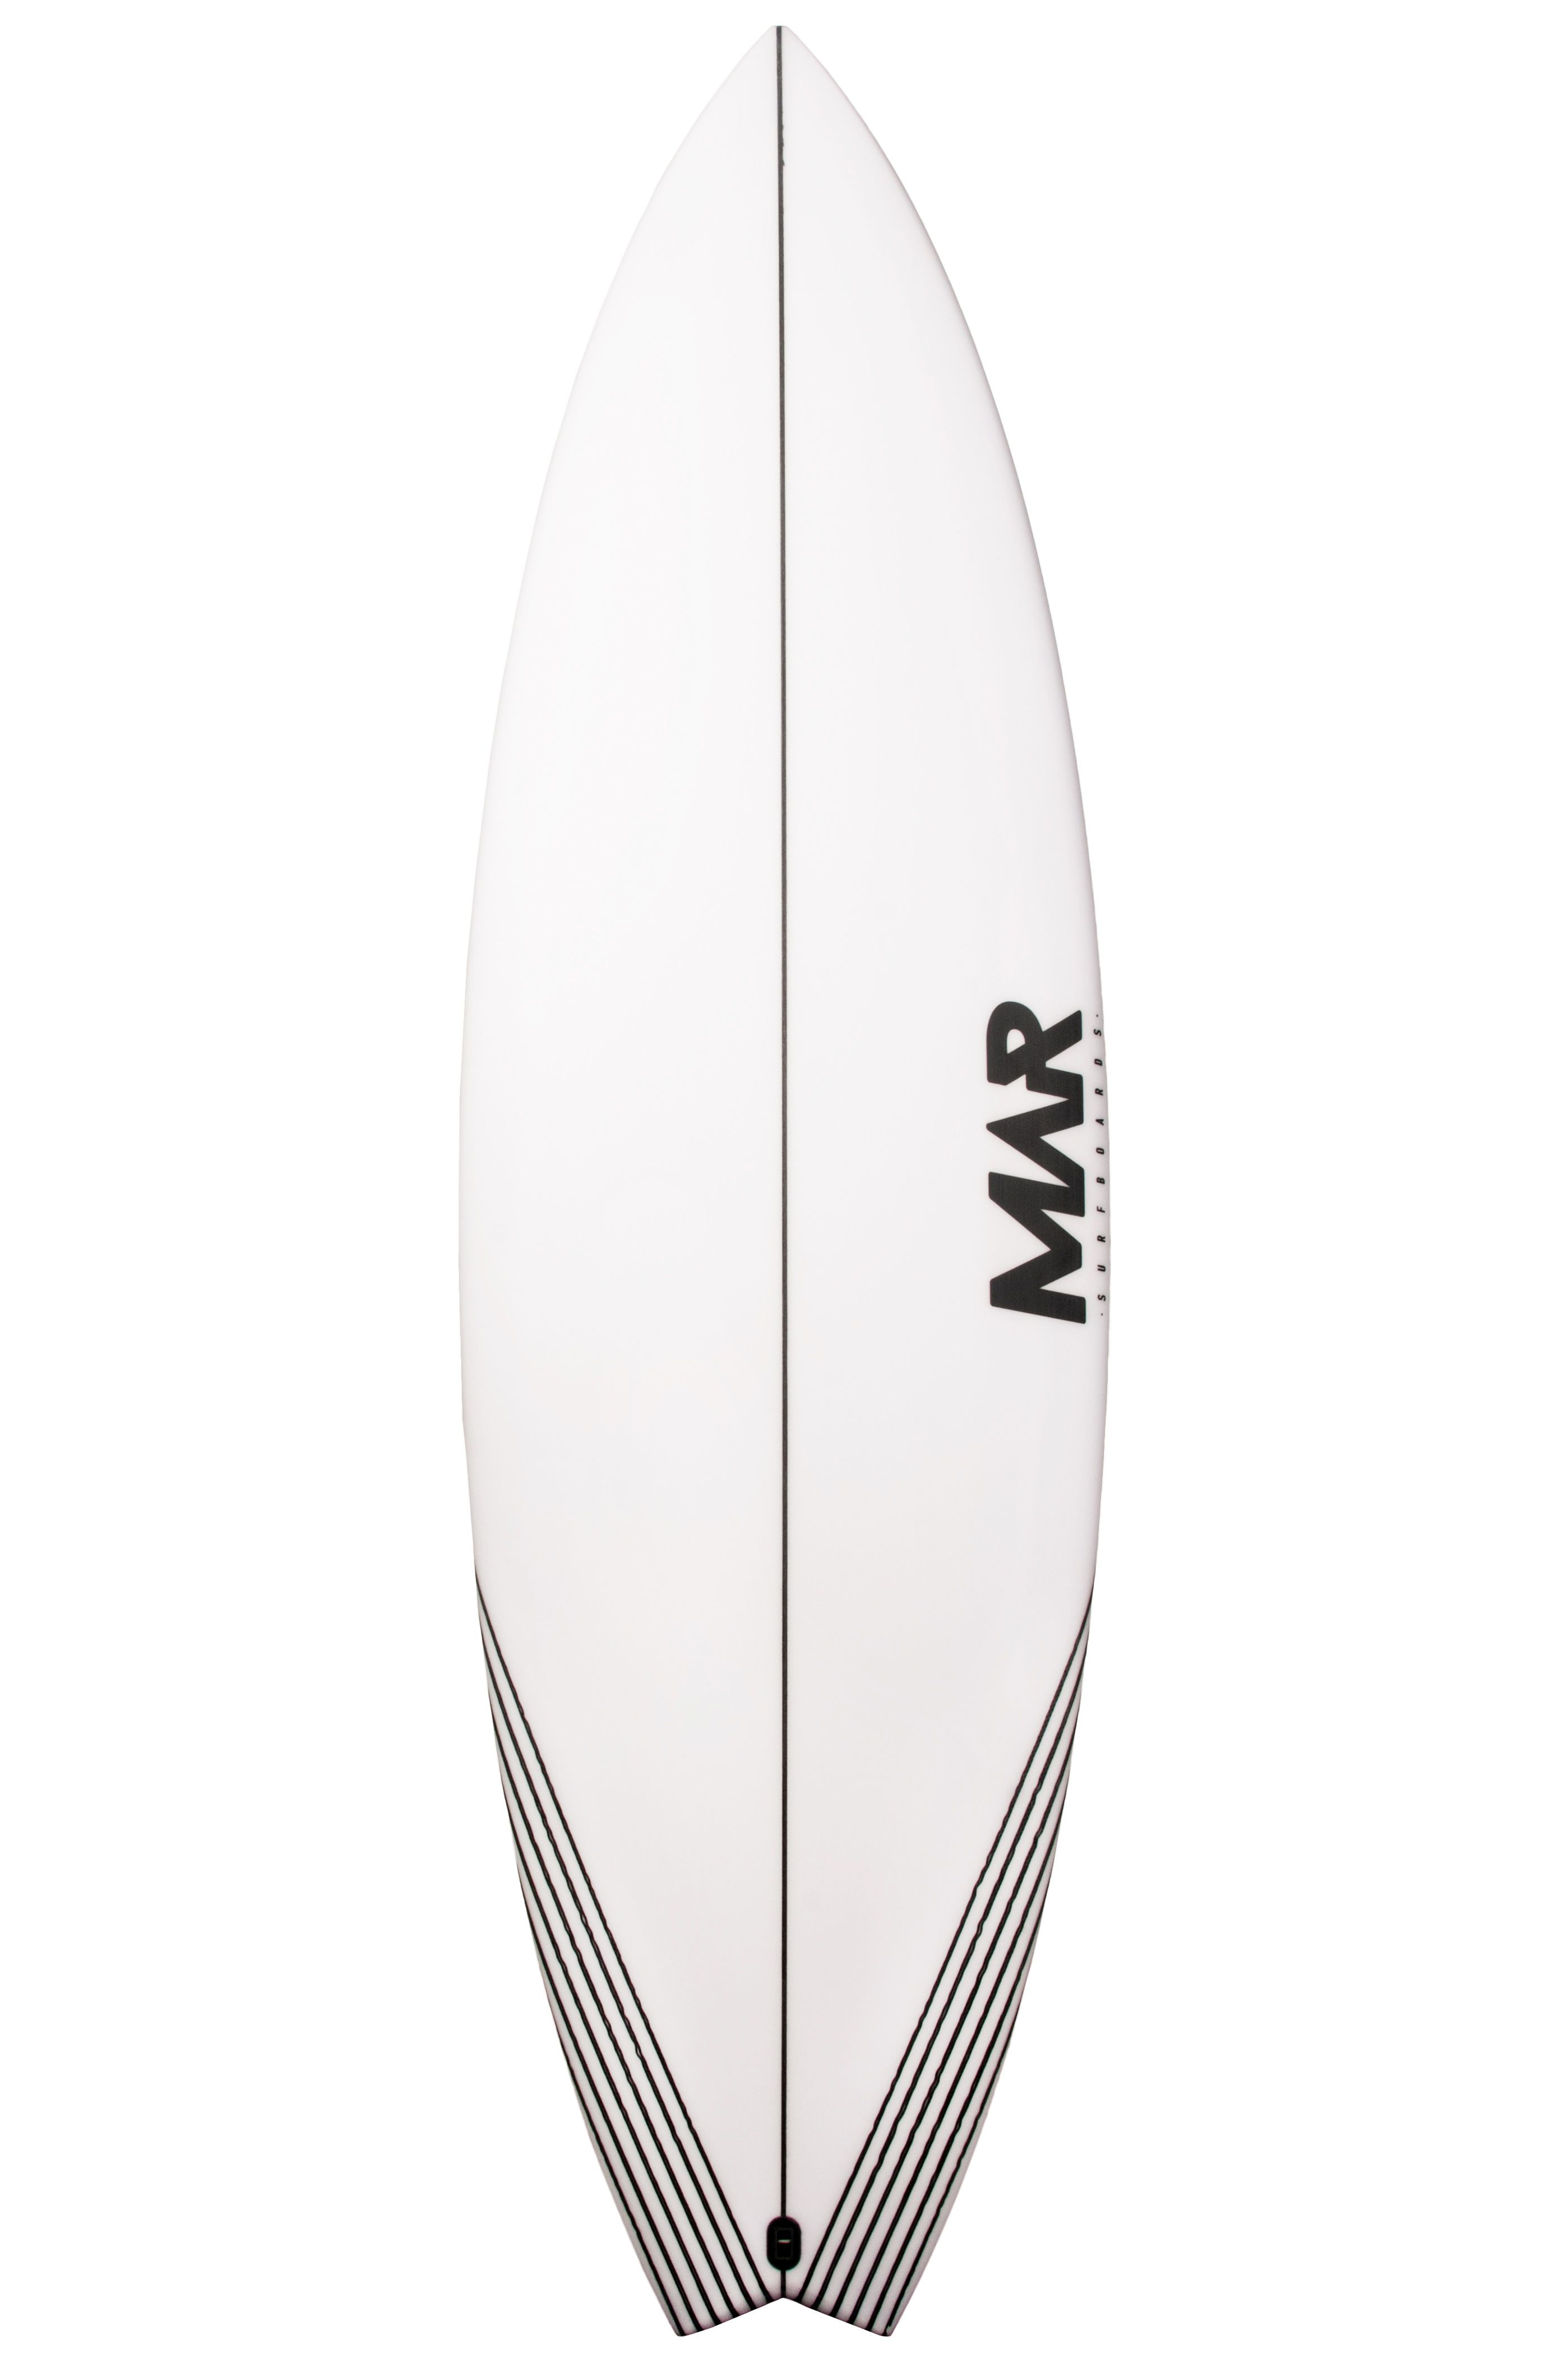 Prancha Surf Mar 6'4 PARROT PU Swallow Tail - White FCS II 6ft4